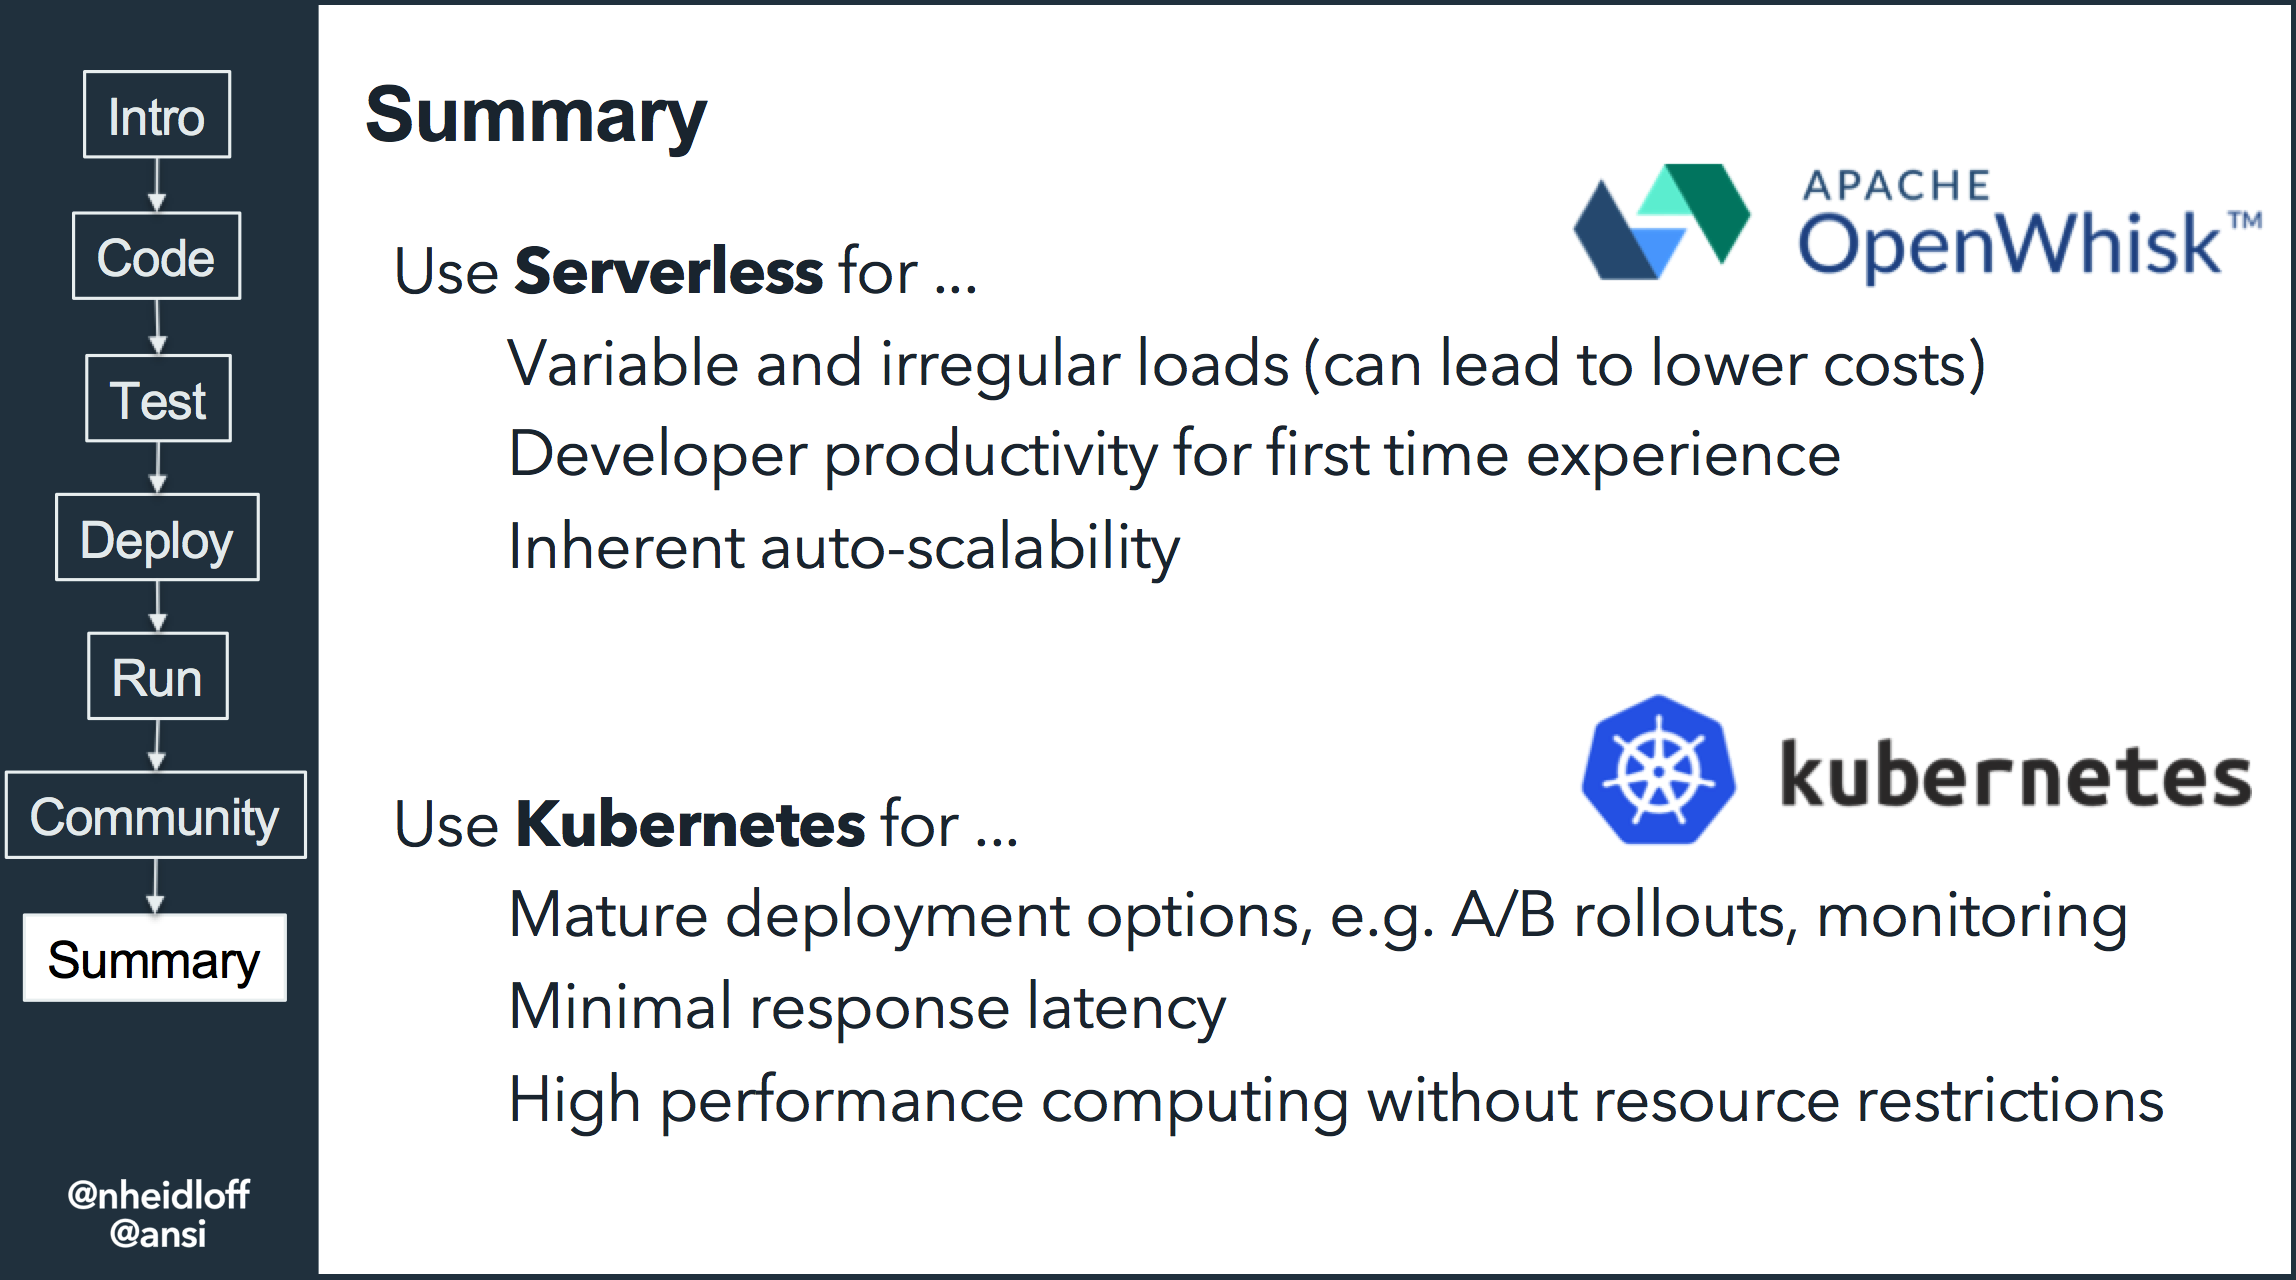 When to Use Serverless, and When to Use Kubernetes - DZone Cloud